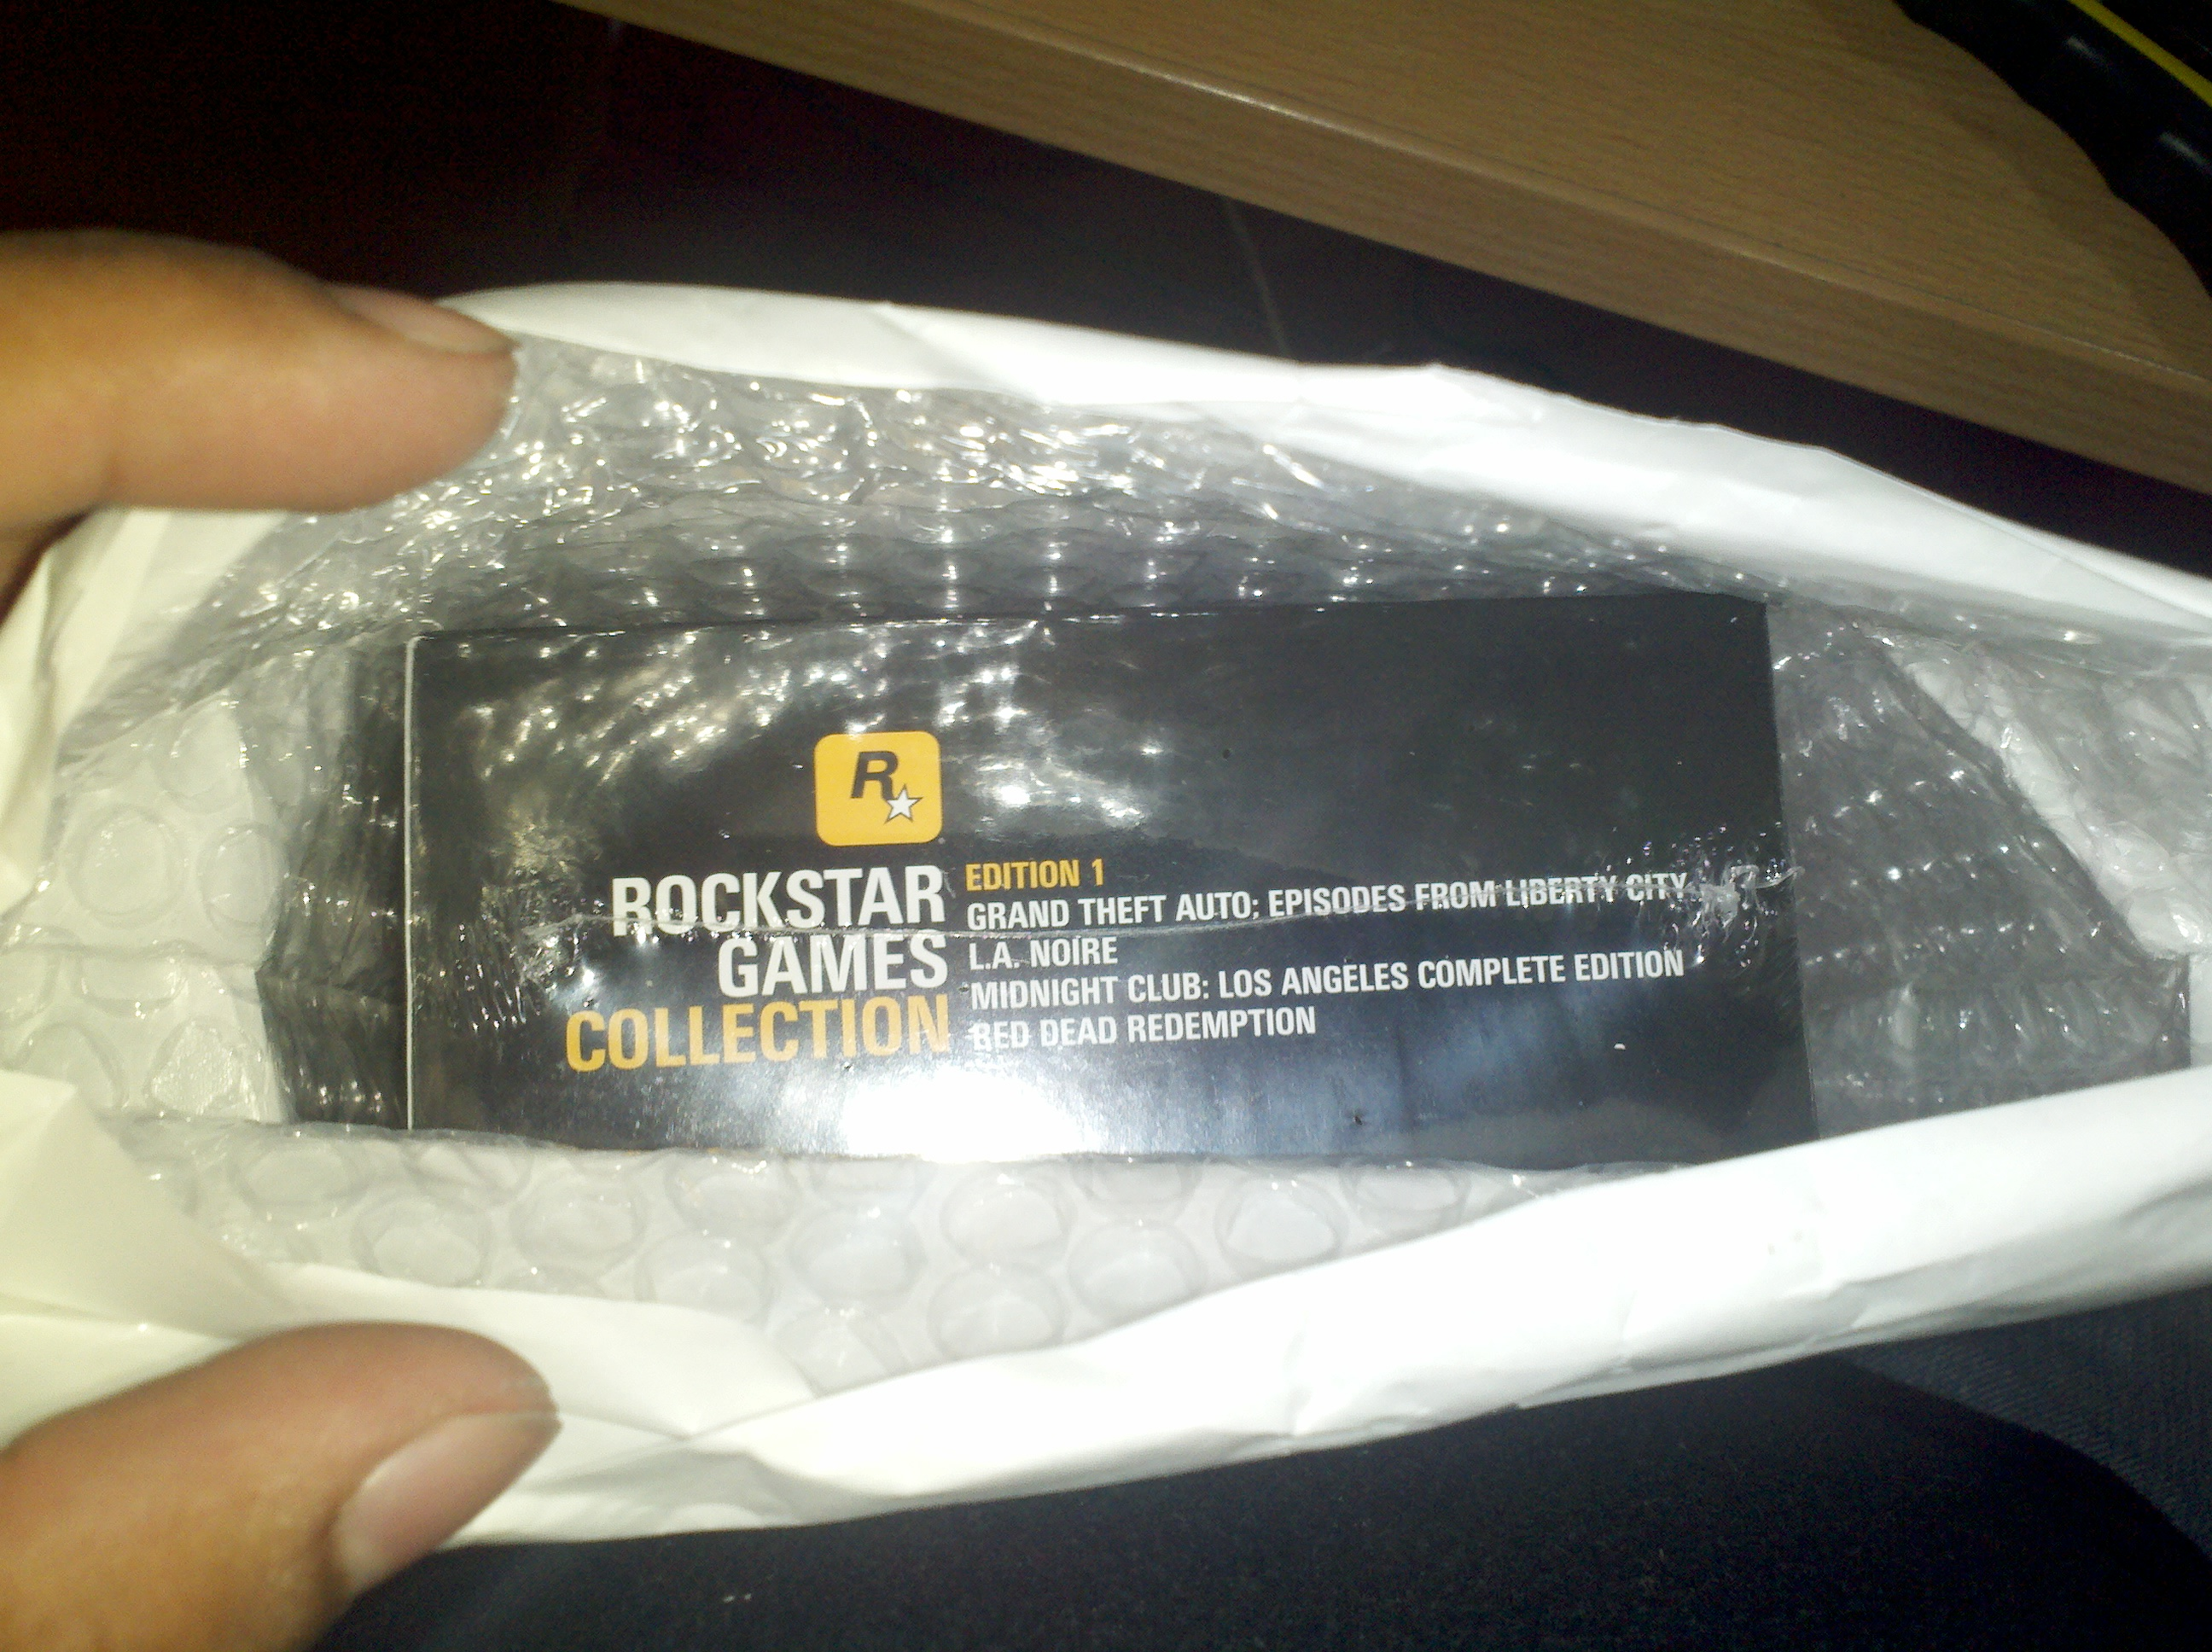 [unboxing] [M128] Nueva compra Rockstar Games Collection